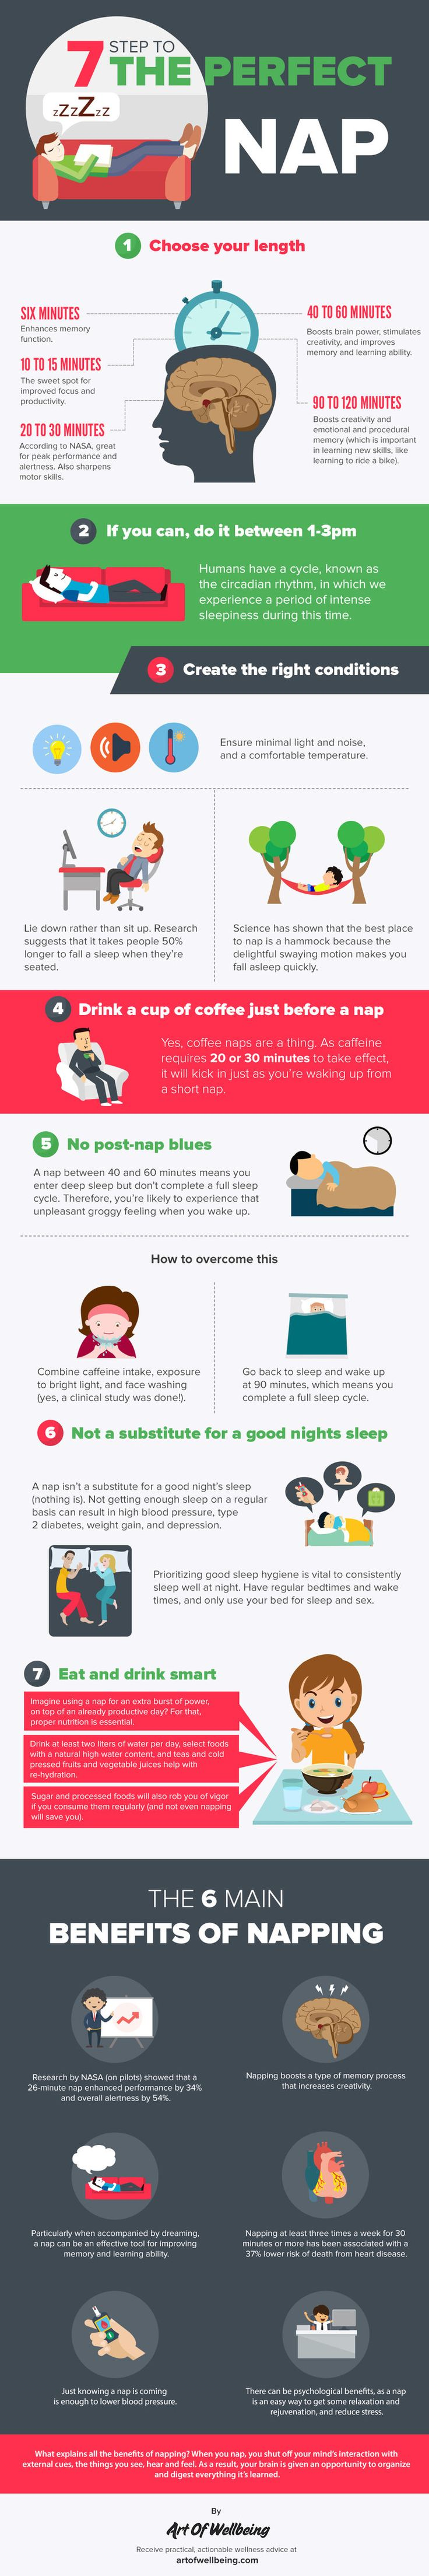 Napping is an incredible way to boost our health and productivity. Among its many benefits, science has shown that it can enhance our mood, performance, memory and creativity. However, not all naps are created equal. To help you get the most out of your nap (and avoid that unpleasant groggy feeling), Art of Wellbeing has created this 7 step infographic.